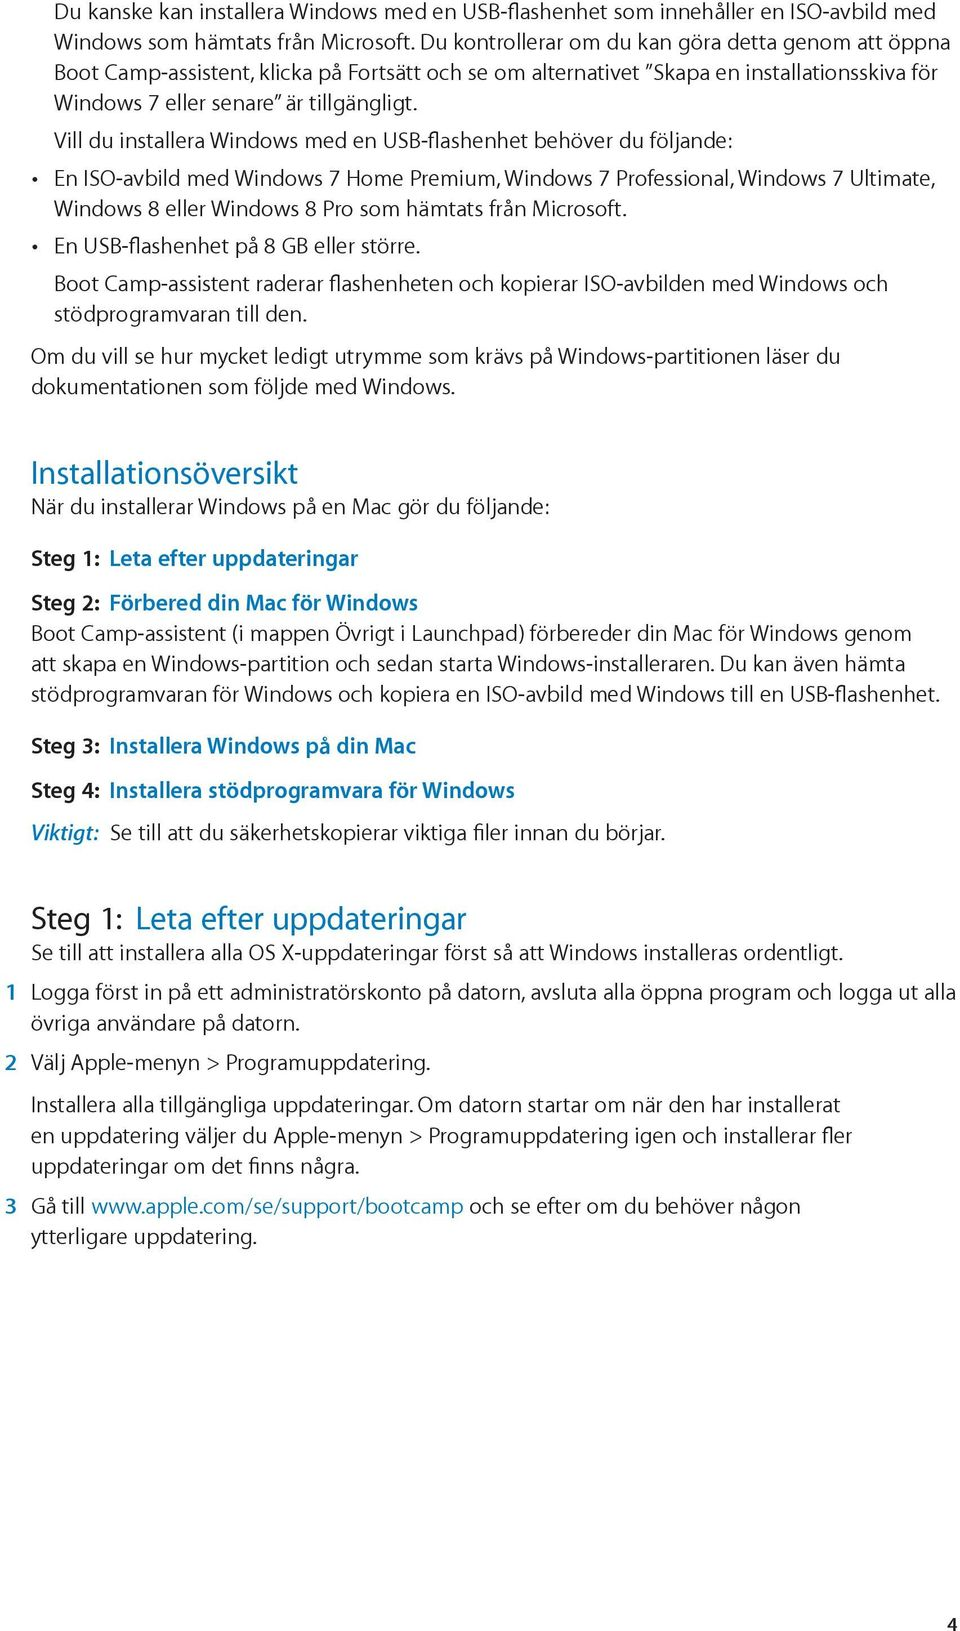 Vill du installera Windows med en USB-flashenhet behöver du följande: En ISO-avbild med Windows 7 Home Premium, Windows 7 Professional, Windows 7 Ultimate, Windows 8 eller Windows 8 Pro som hämtats